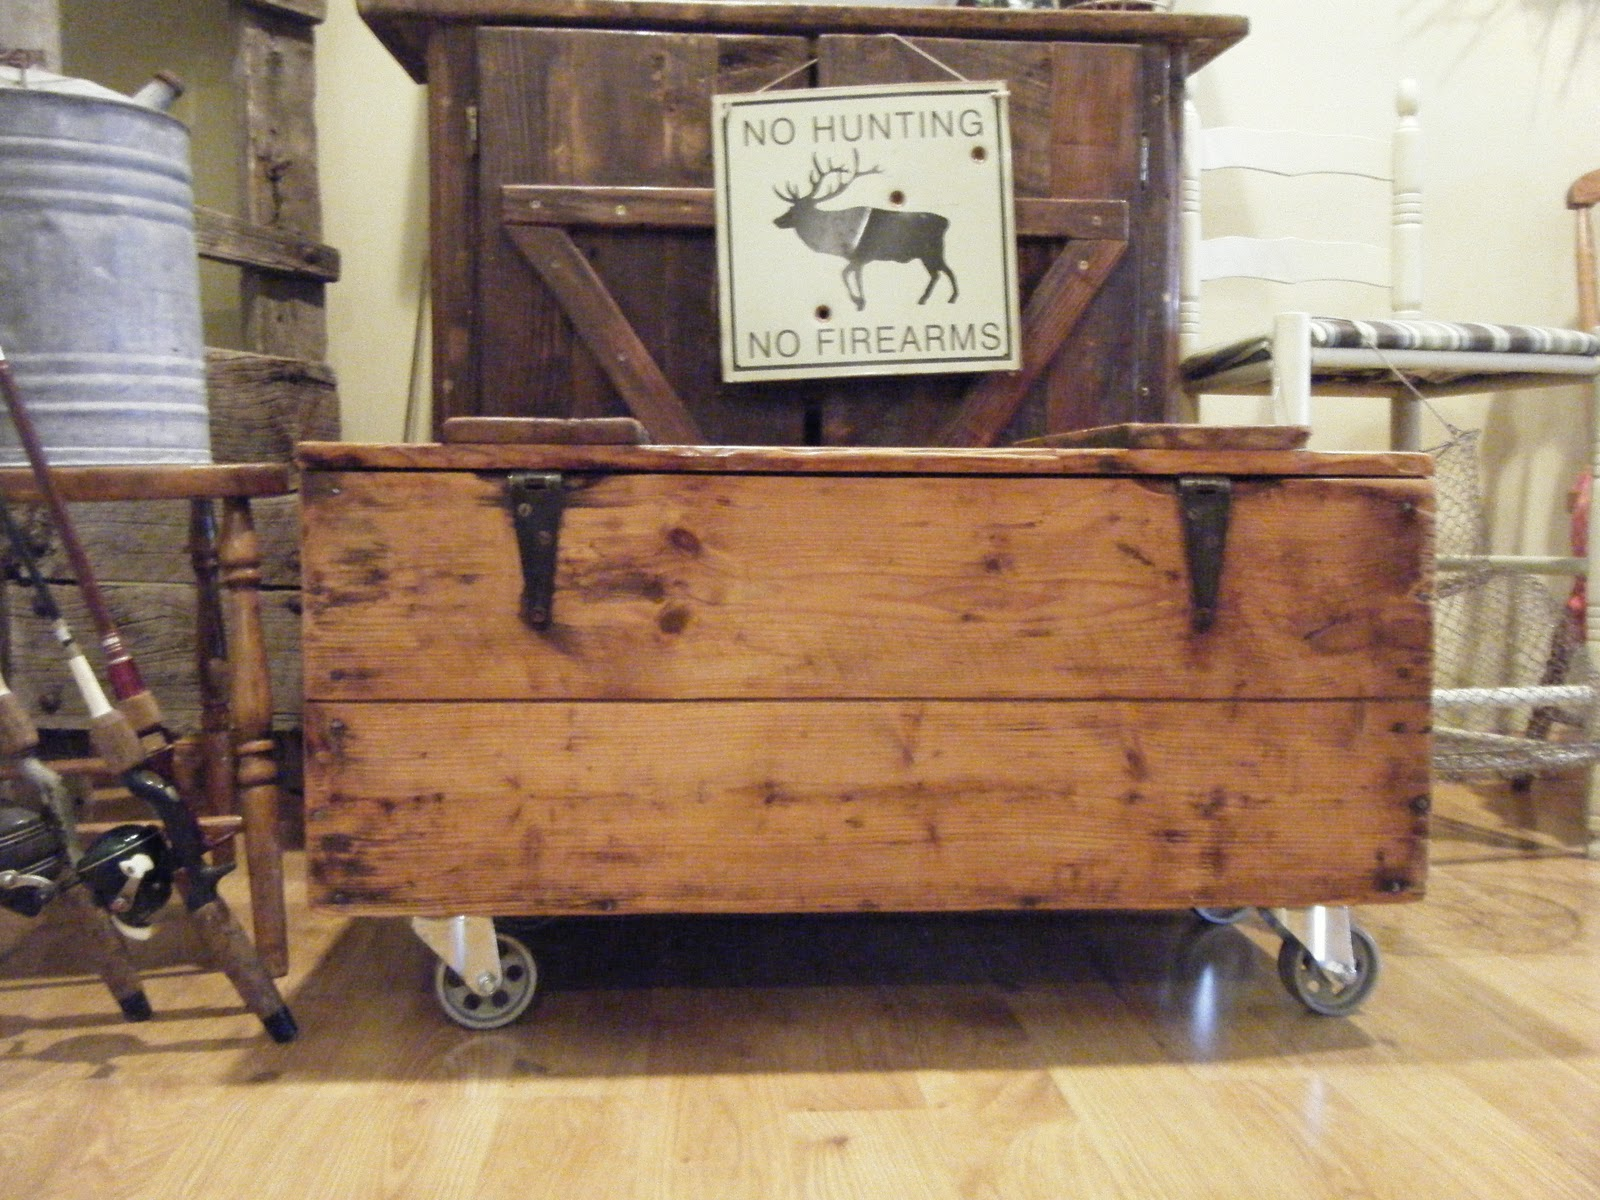 Tattered Lantern Rustic Crate Coffee Table On Casters 115 00 Obo Sold